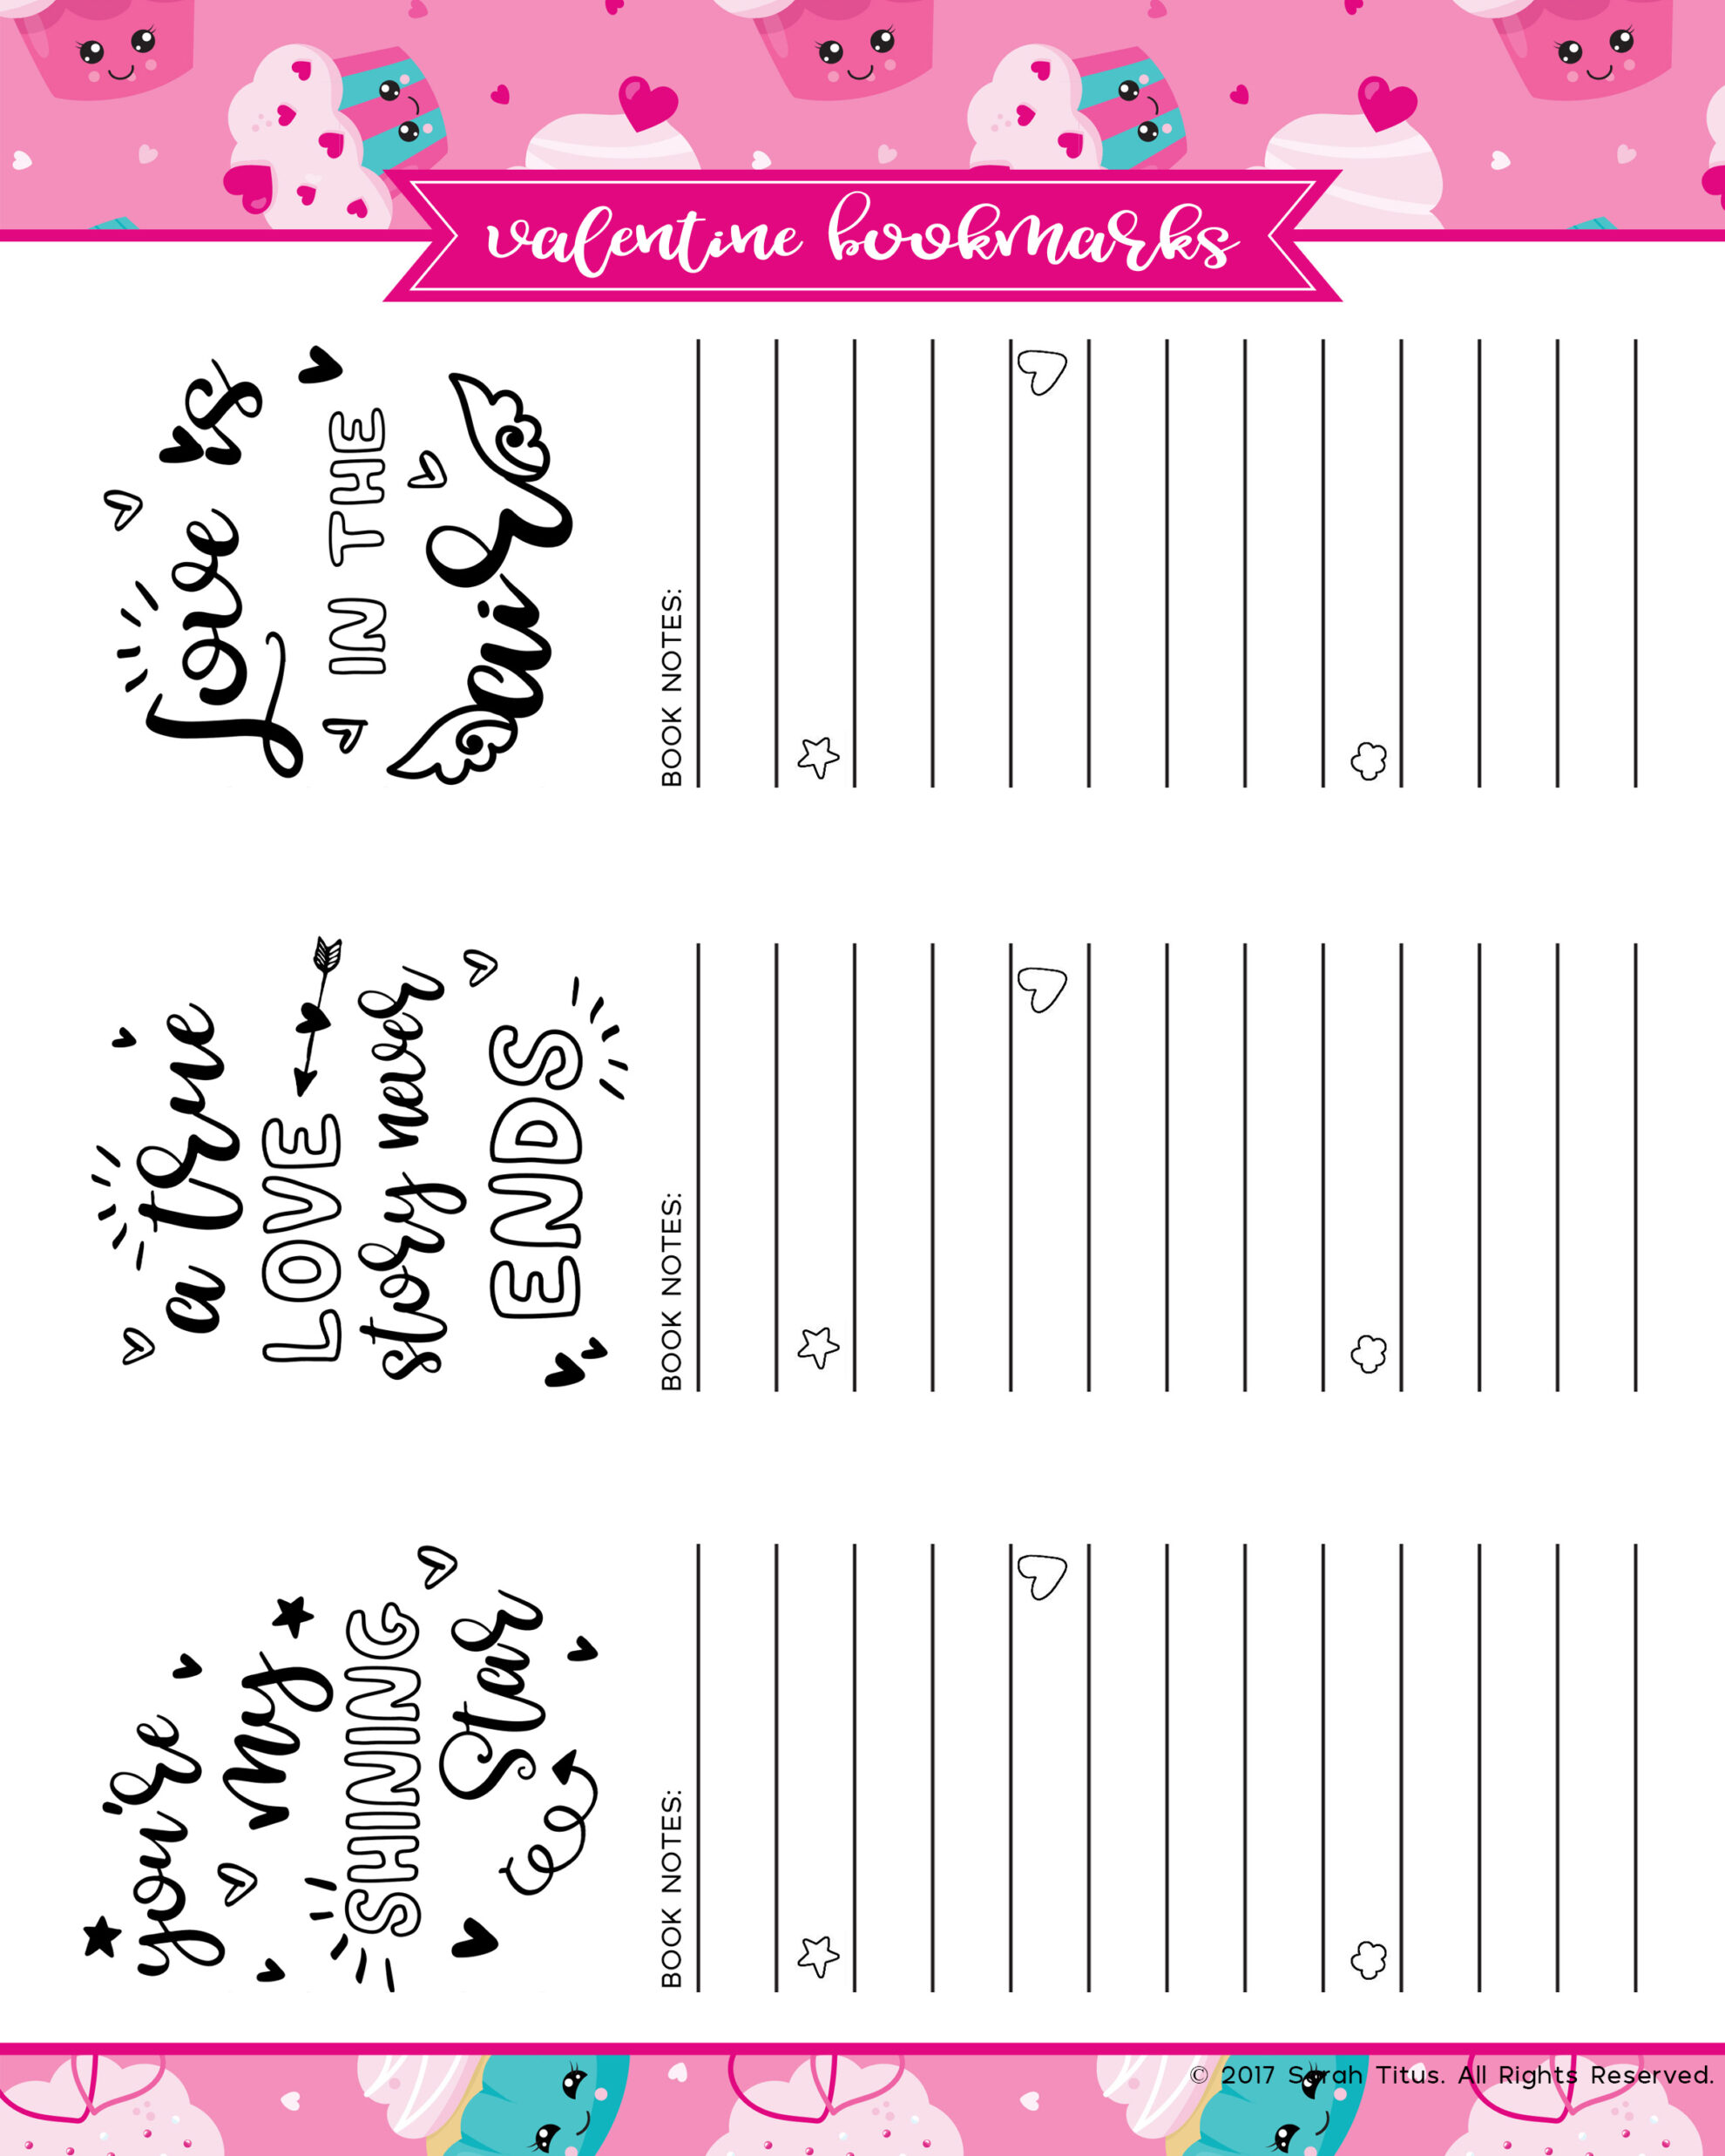 picture regarding Printable Valentine Bookmark known as No cost Printable Passionate Coloring Bookmarks - Sarah Titus